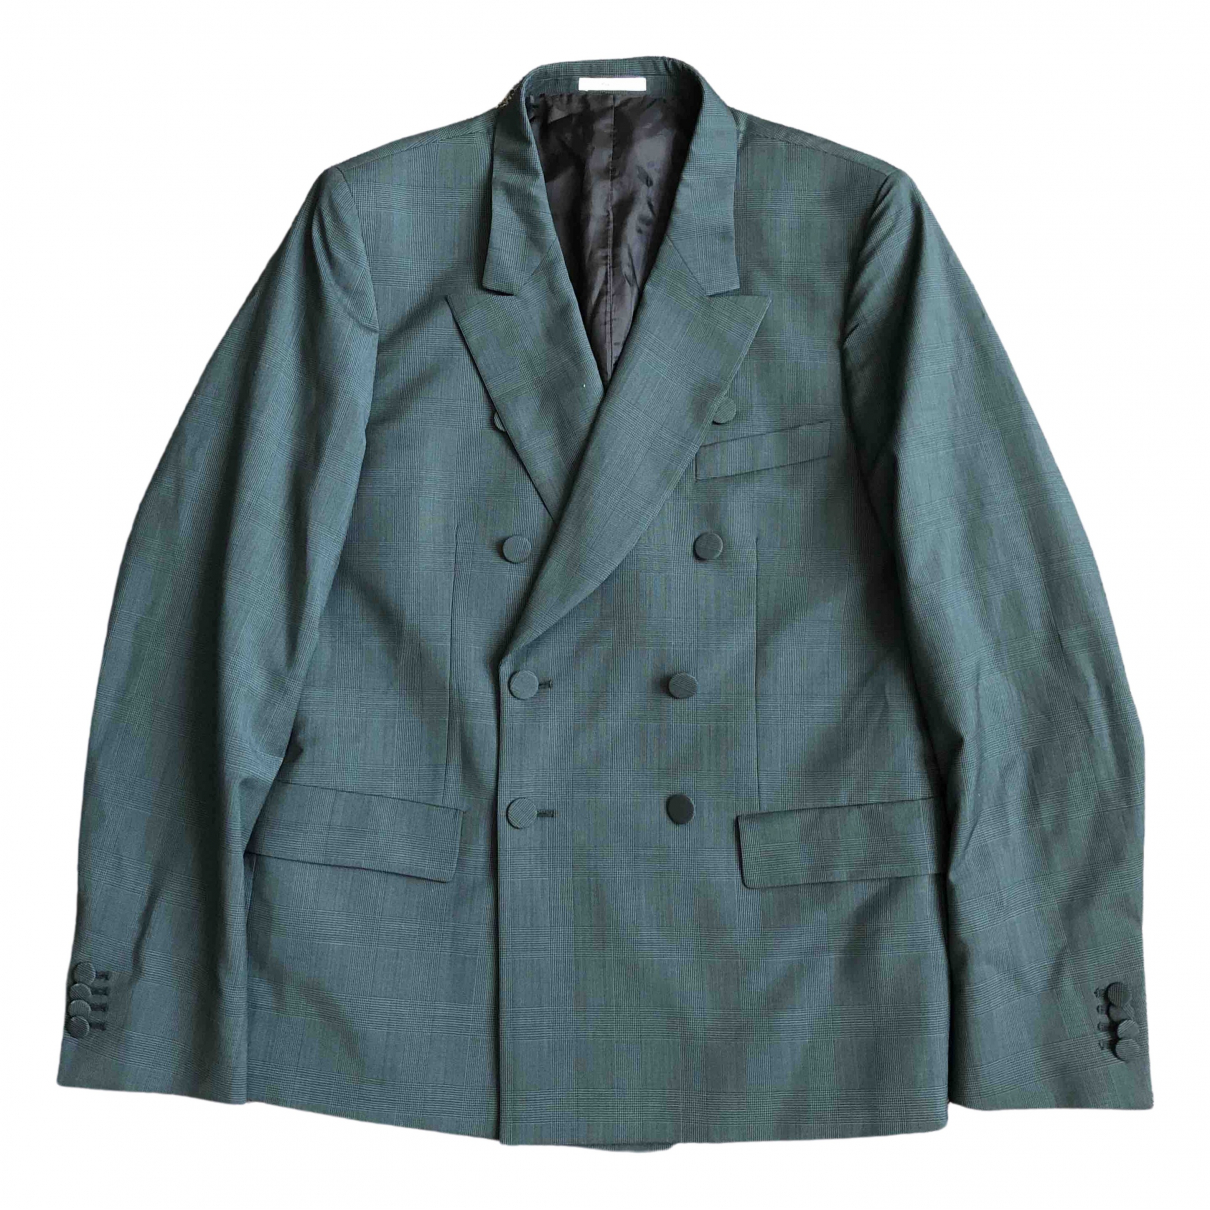 Paul Smith \N Green Wool jacket  for Men 40 UK - US